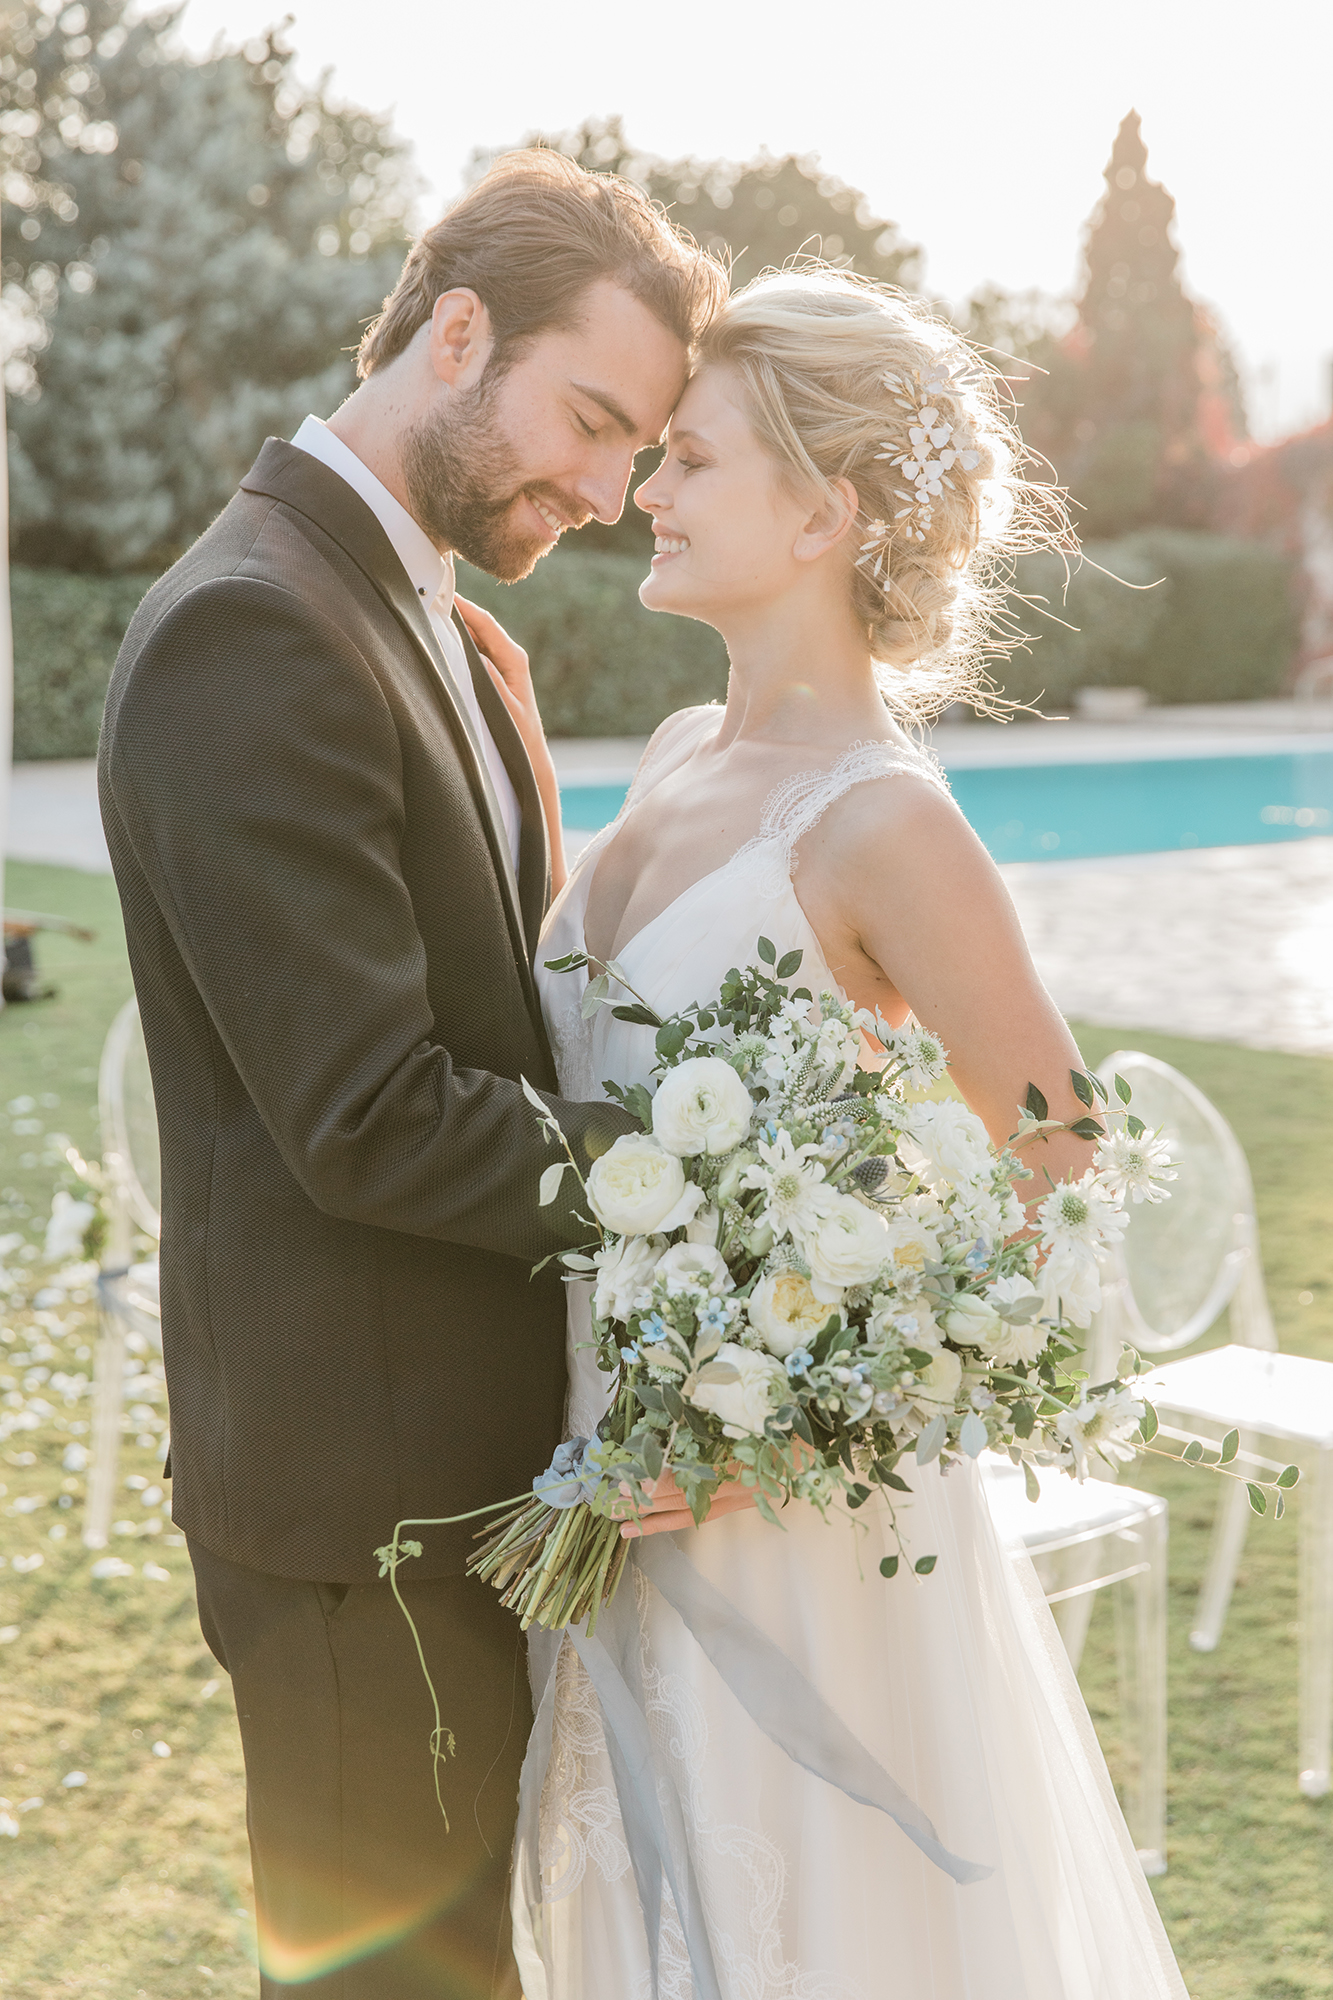 bride-and-groom-hugging-each-other-in-a-beautiful-yard